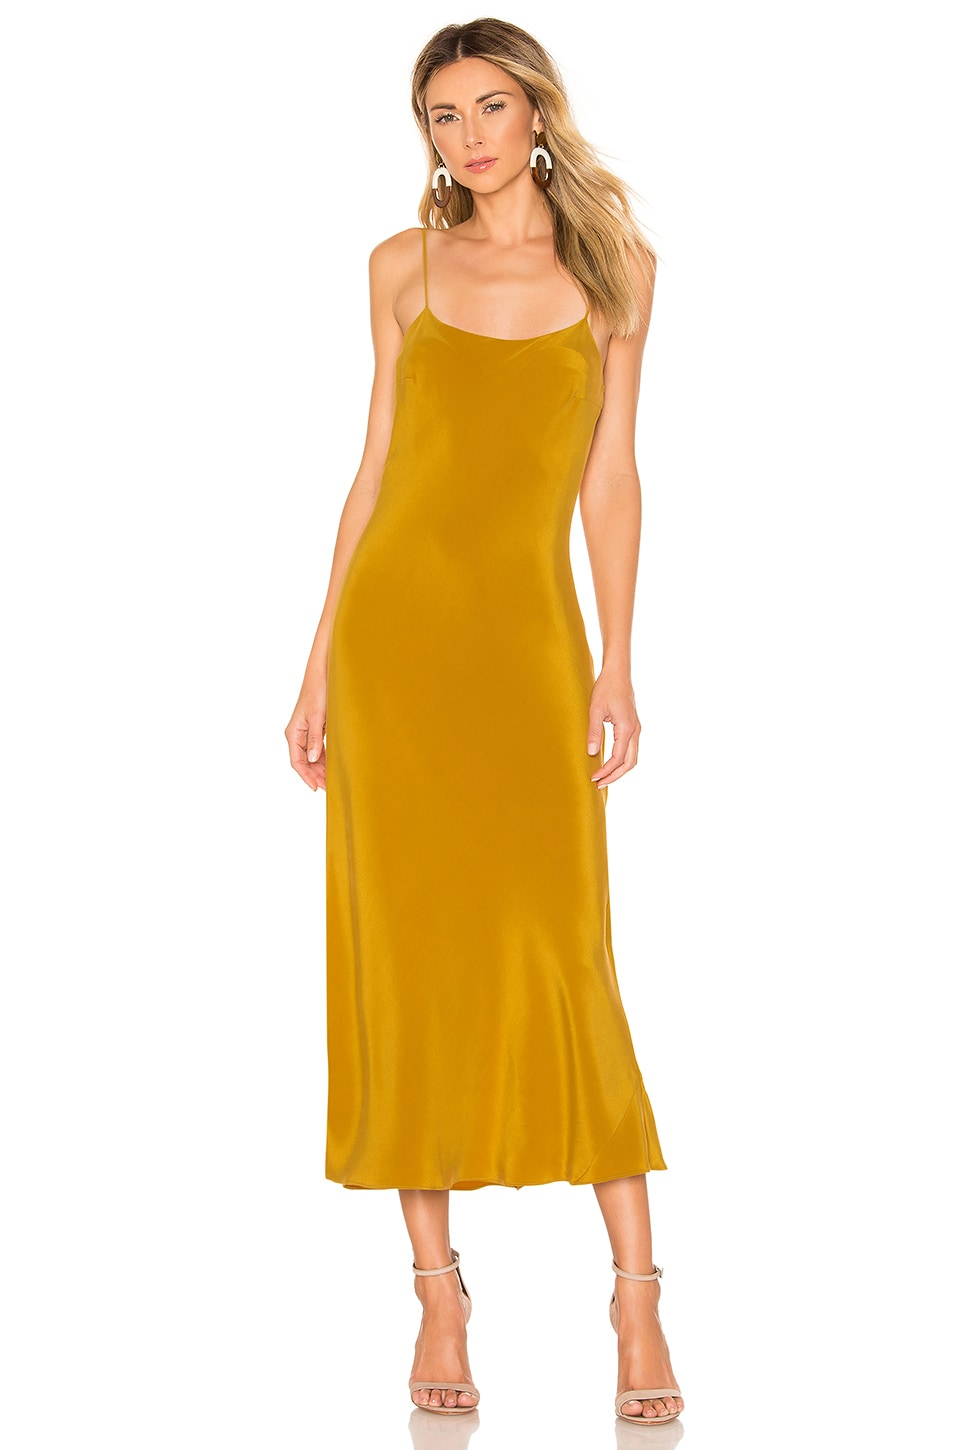 Olivia von Halle Artemis Silk Midi Slip Dress in Tobacco Marocain